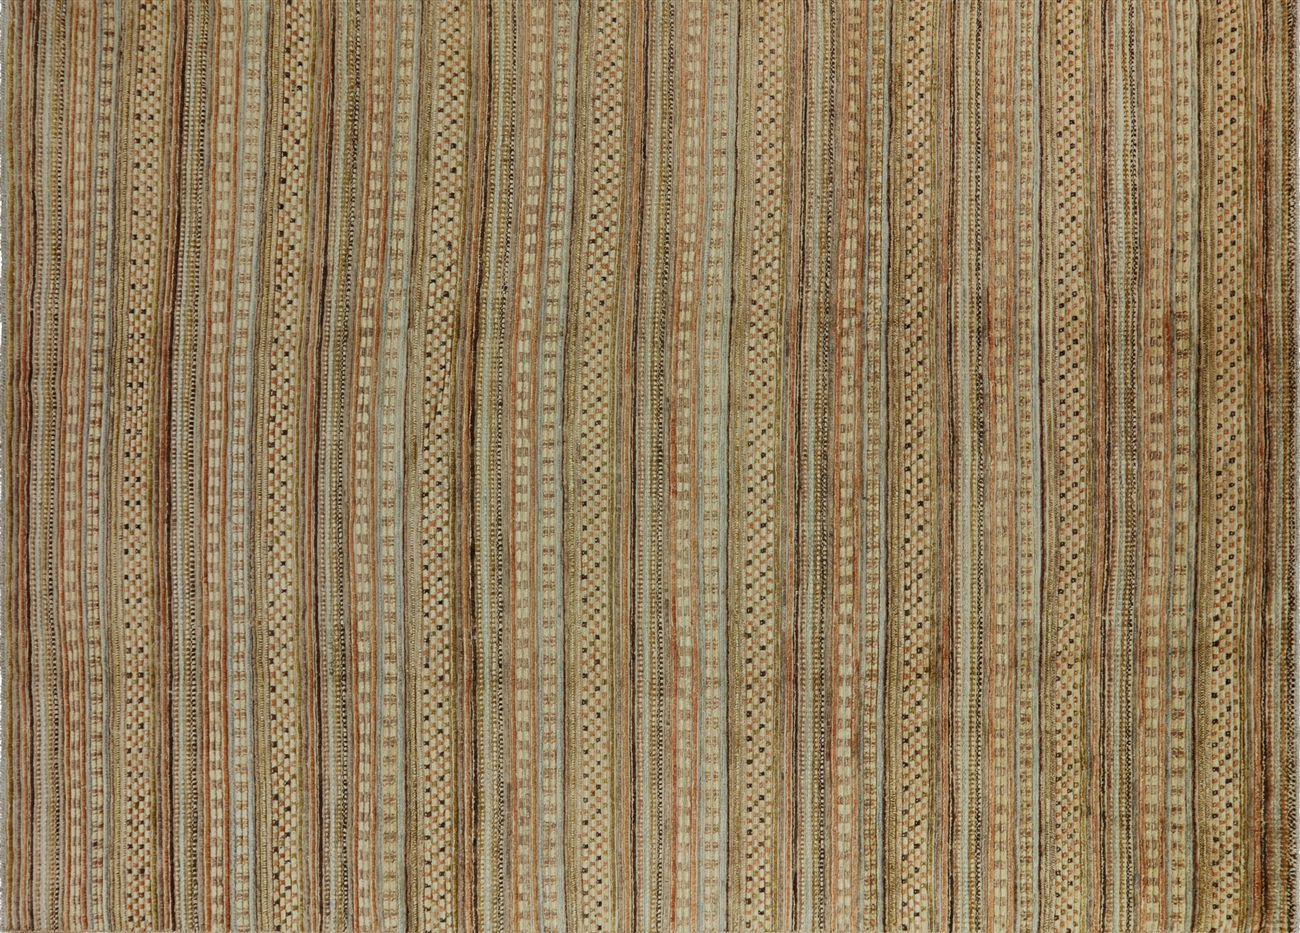 Unique Hand Knotted 9 X12 High Kpsi Earth Tone Gabbeh Wool Area Rug H7097